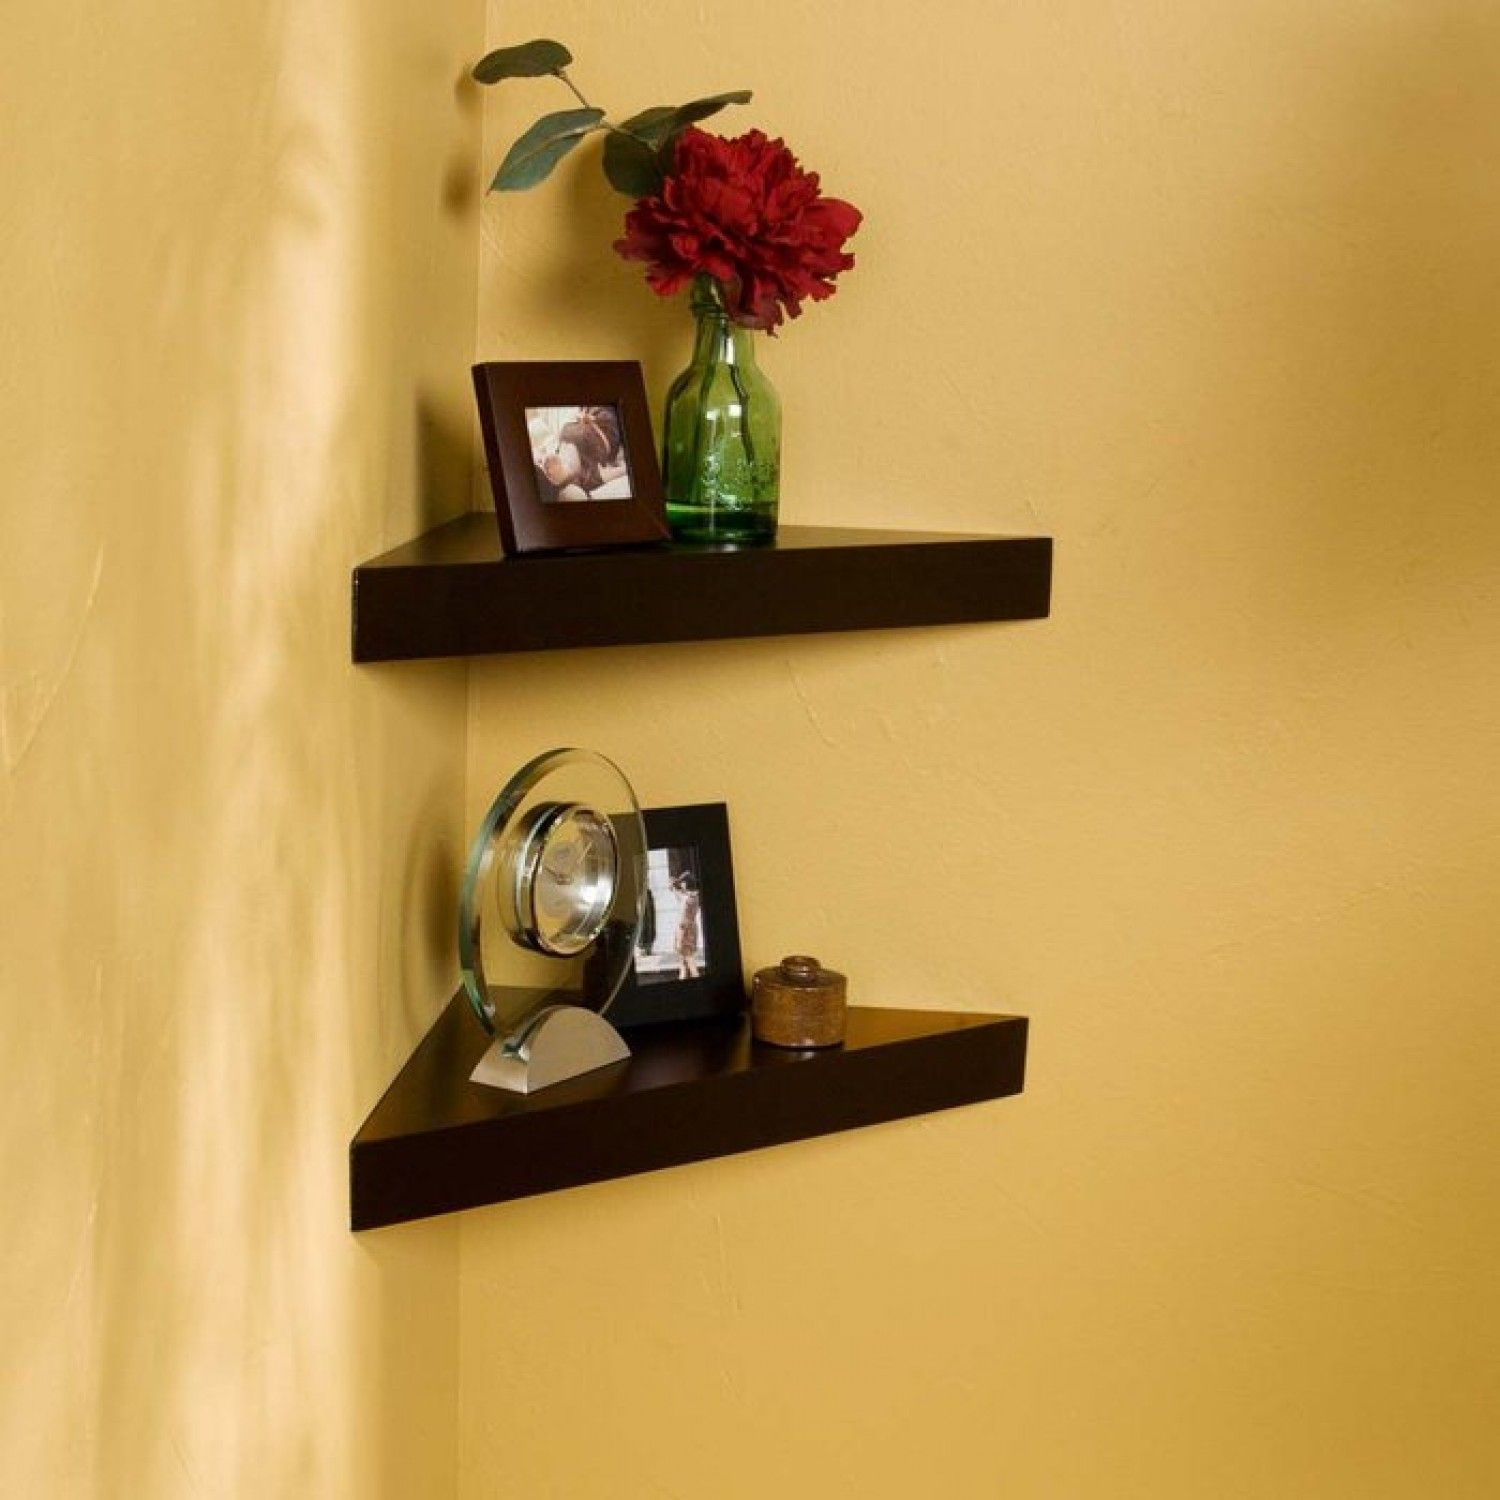 Medium Of Bedroom Corner Wall Shelves